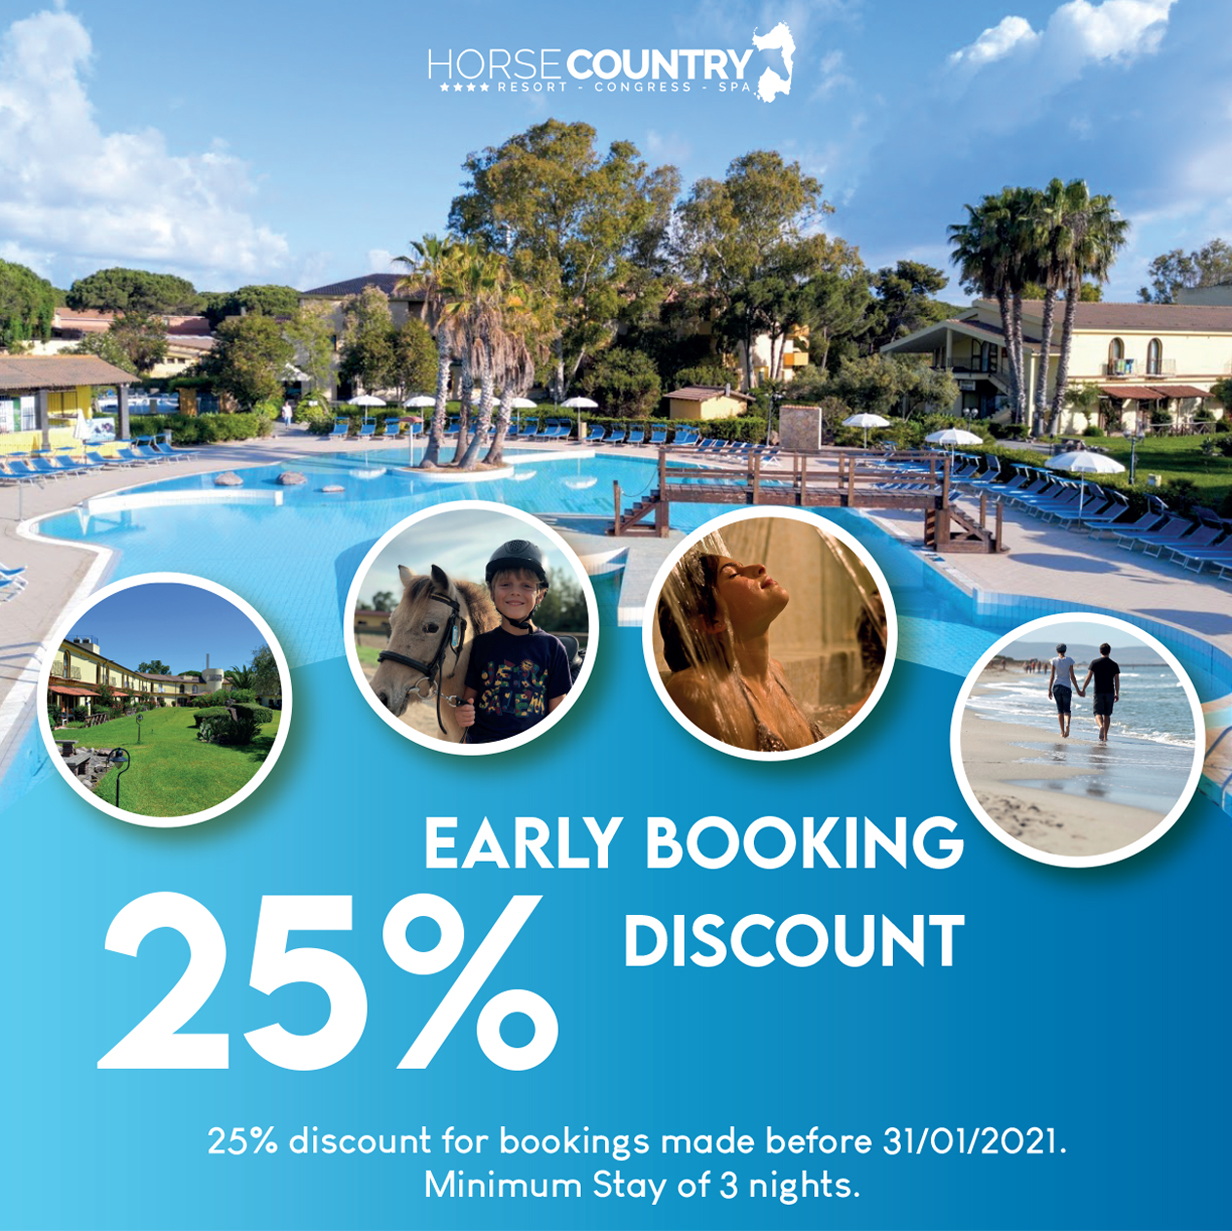 EARLY BOOKING 25% DISCOUNT